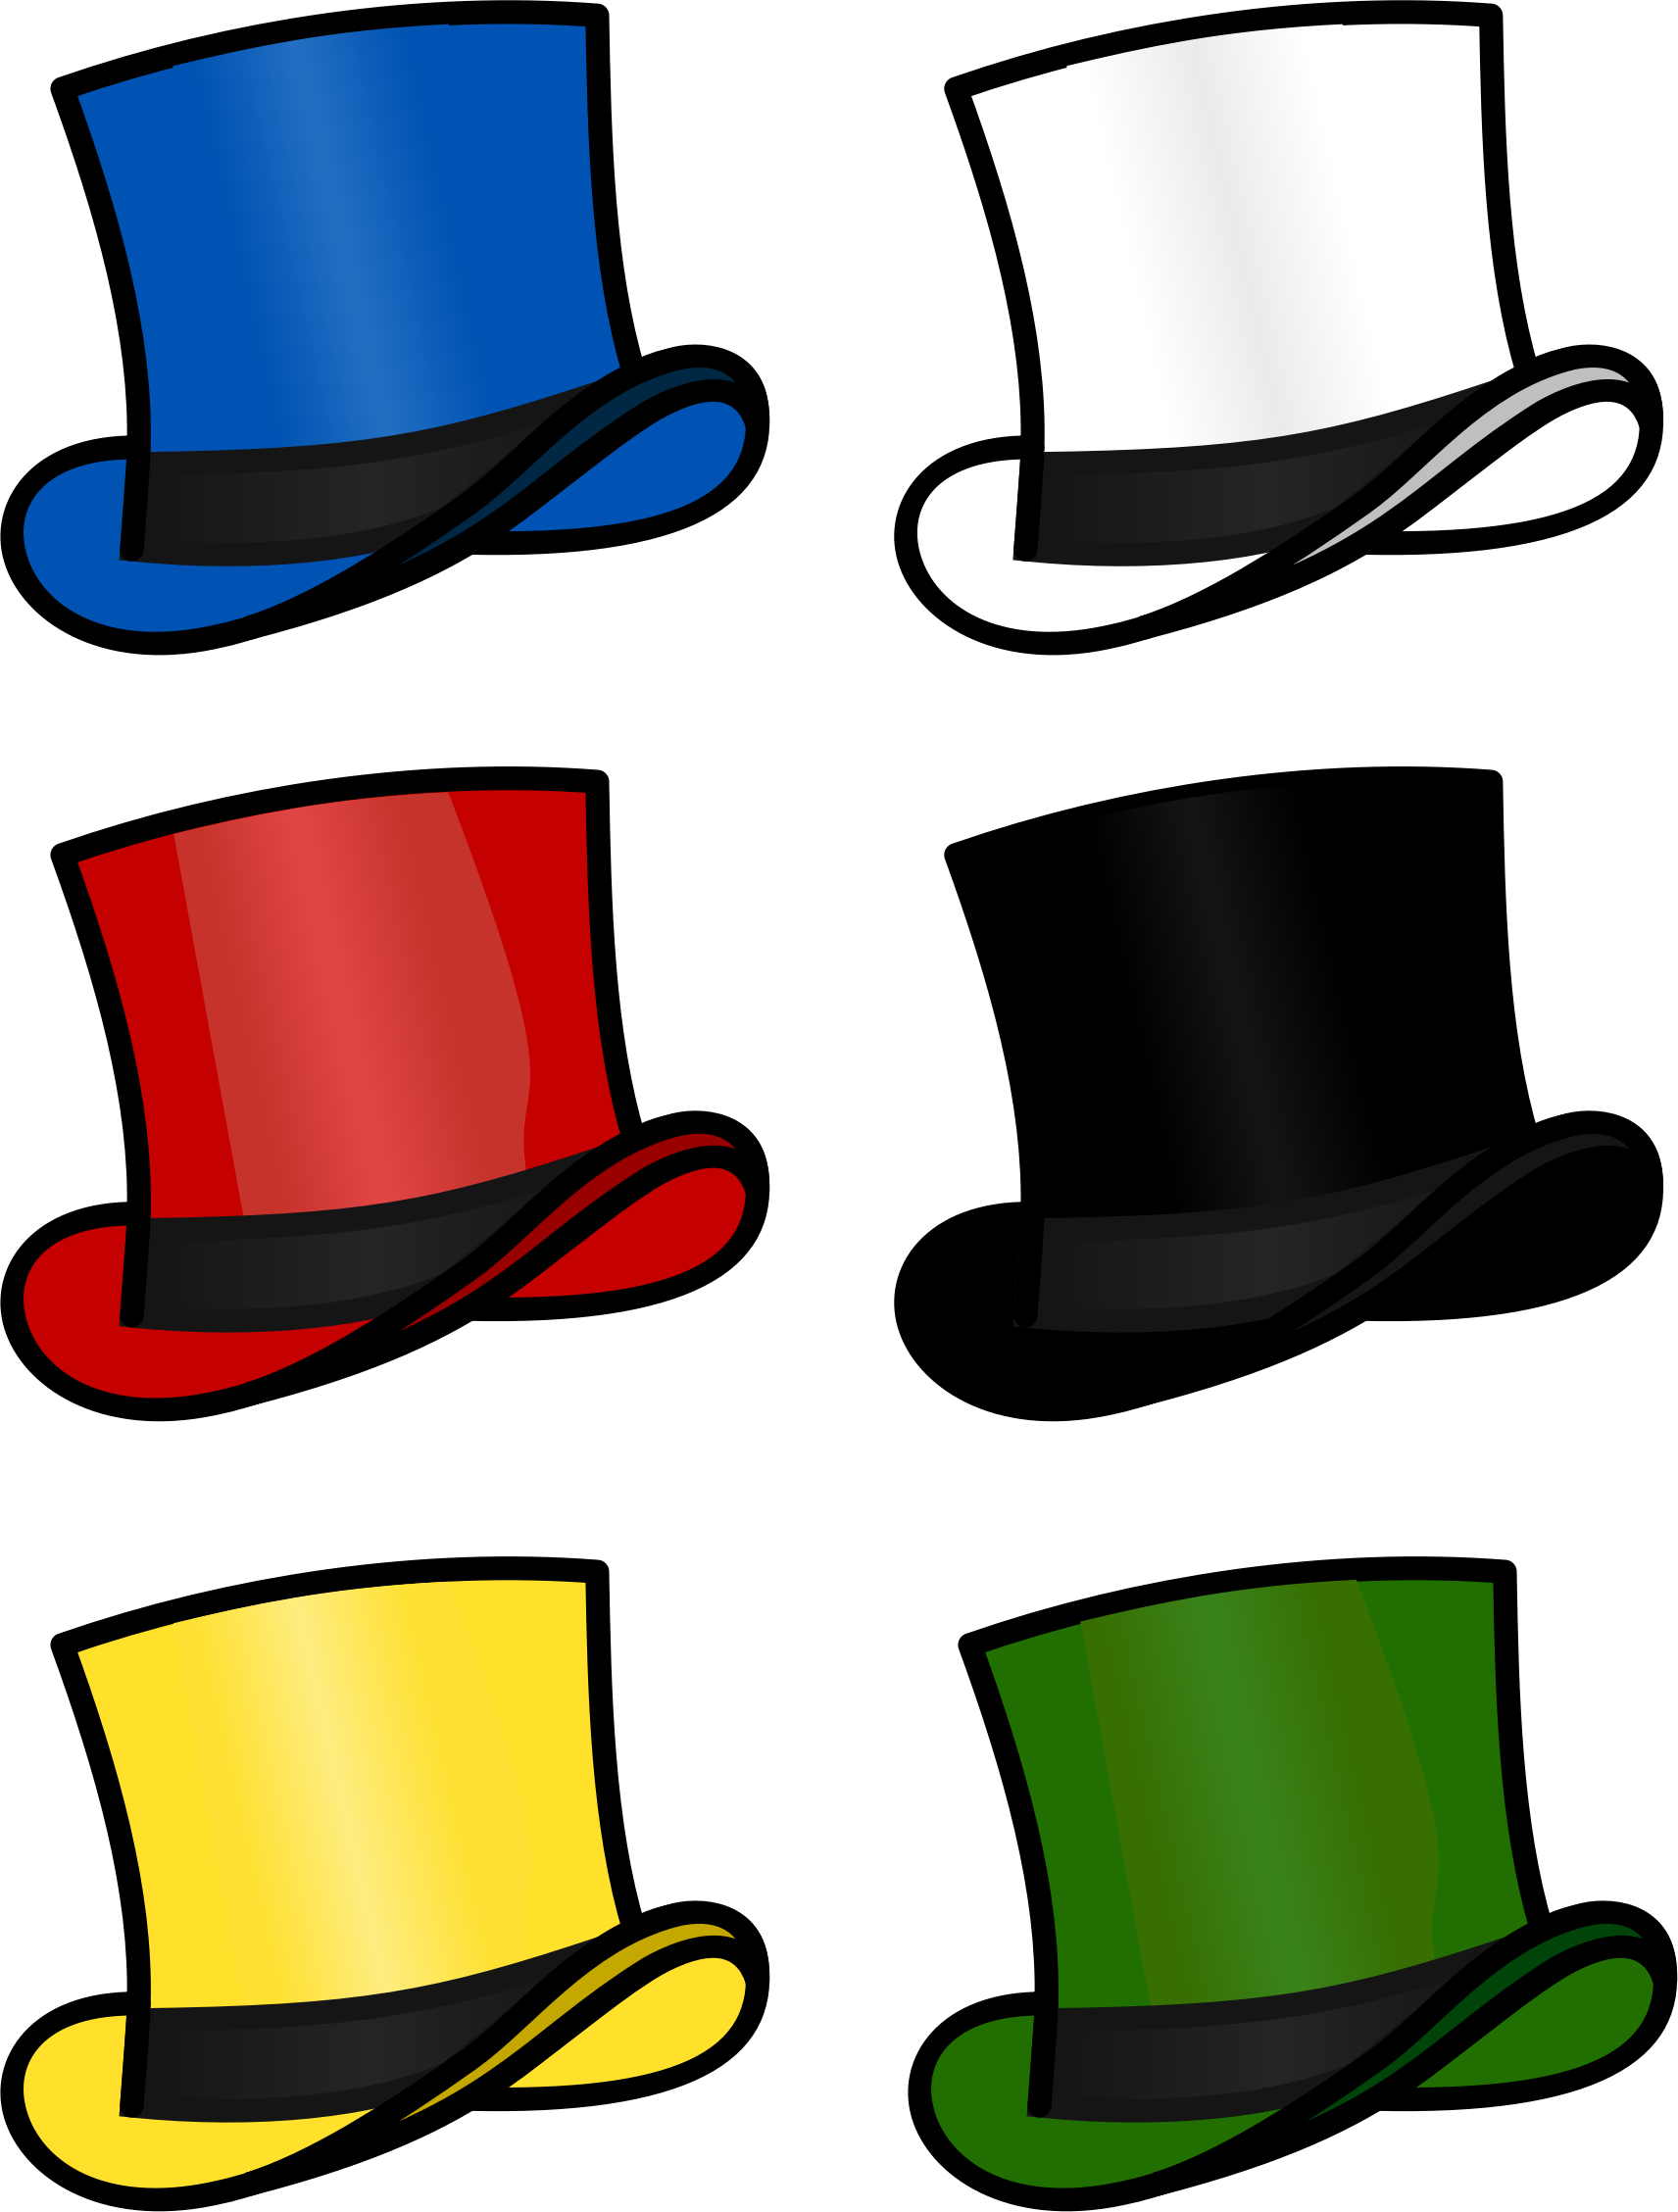 Six Thinking Hats By Cschreuders 6 Thinking Hats Based On Edward De Bono Variation On Top Hat By Bonzo Htt Six Thinking Hats Hats Visible Thinking Routines